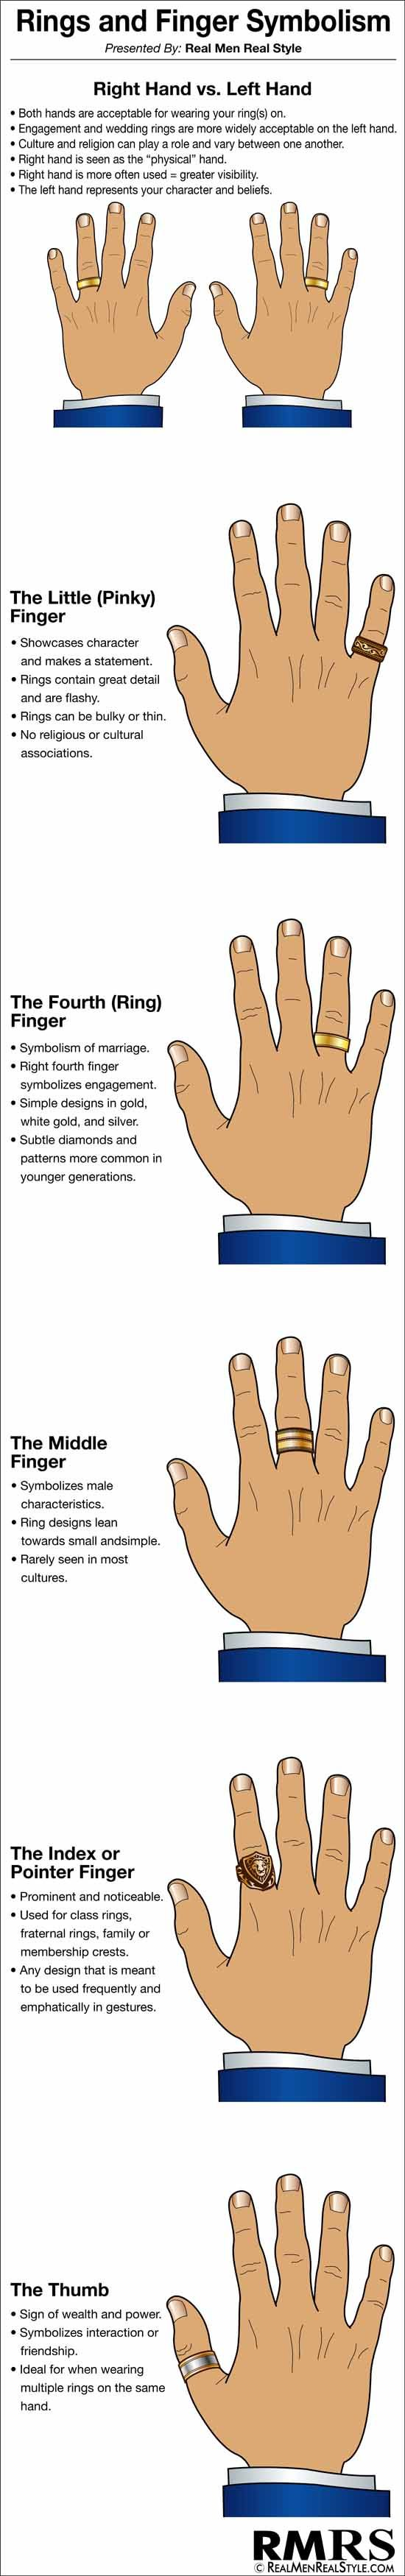 Ring Finger & Symbolism Infographic | Man's Guide To Rings & Hand Jewelry (via @nerdfitness)